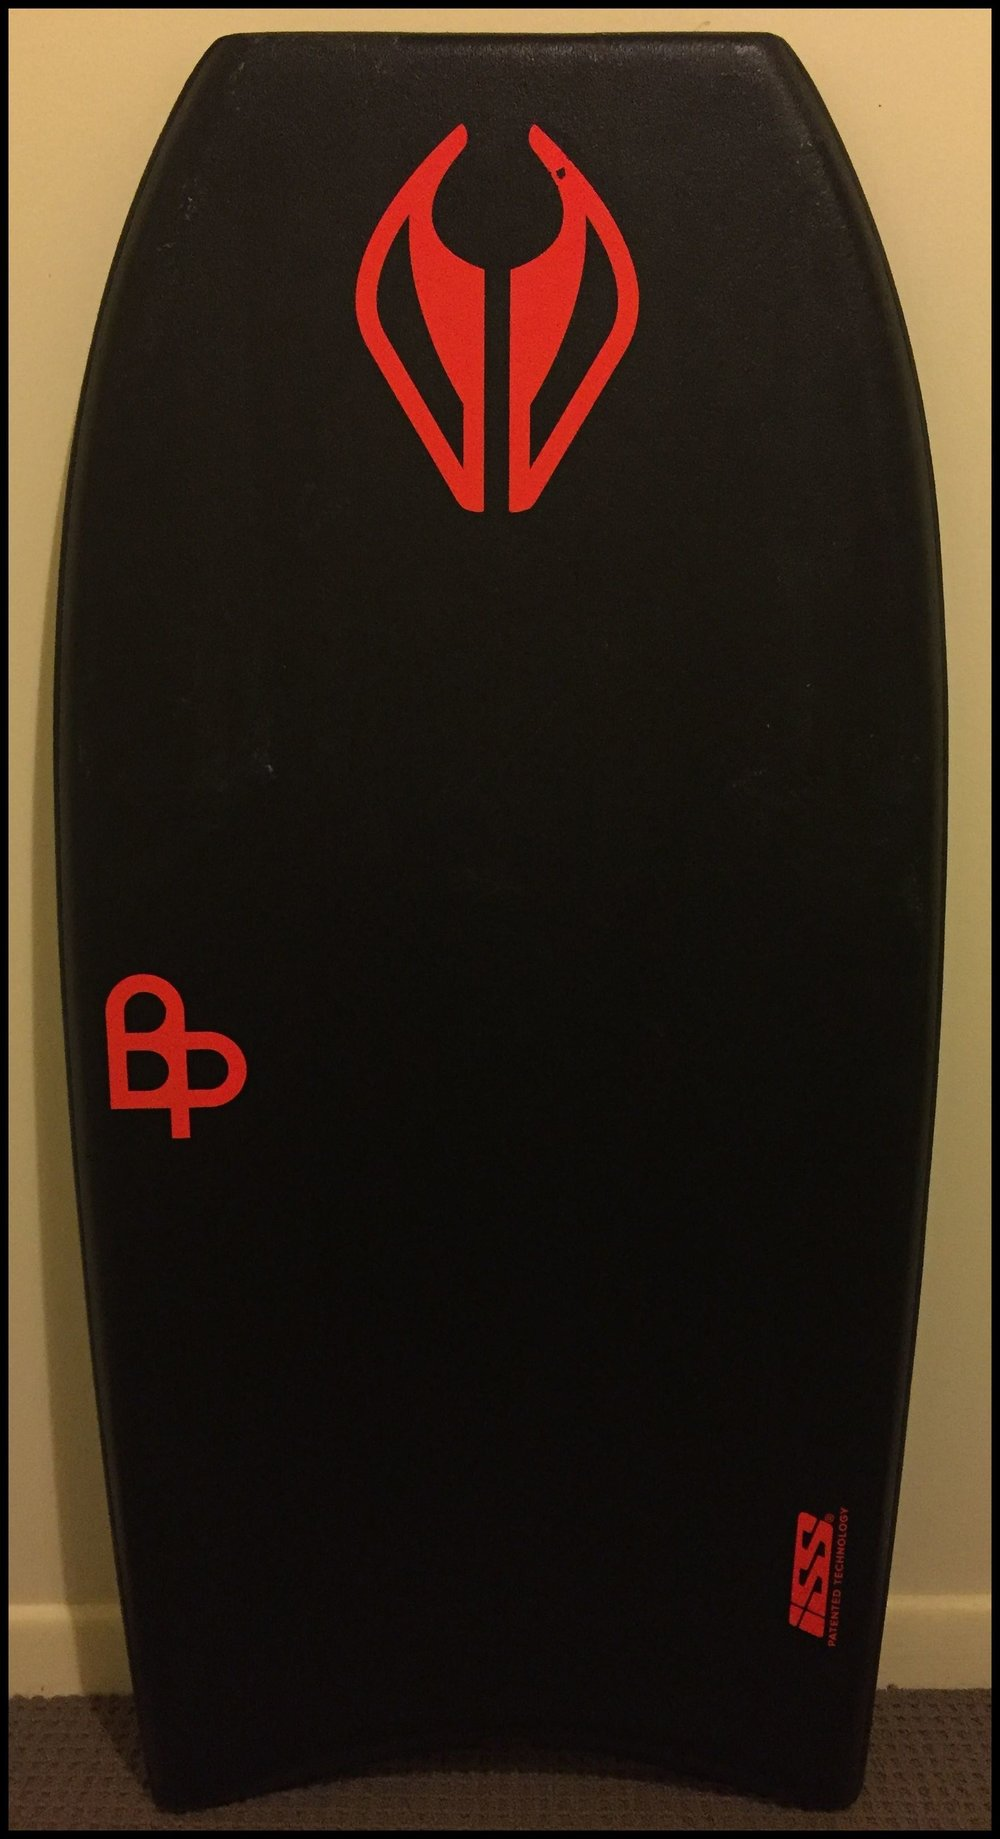 Ben Player's own board